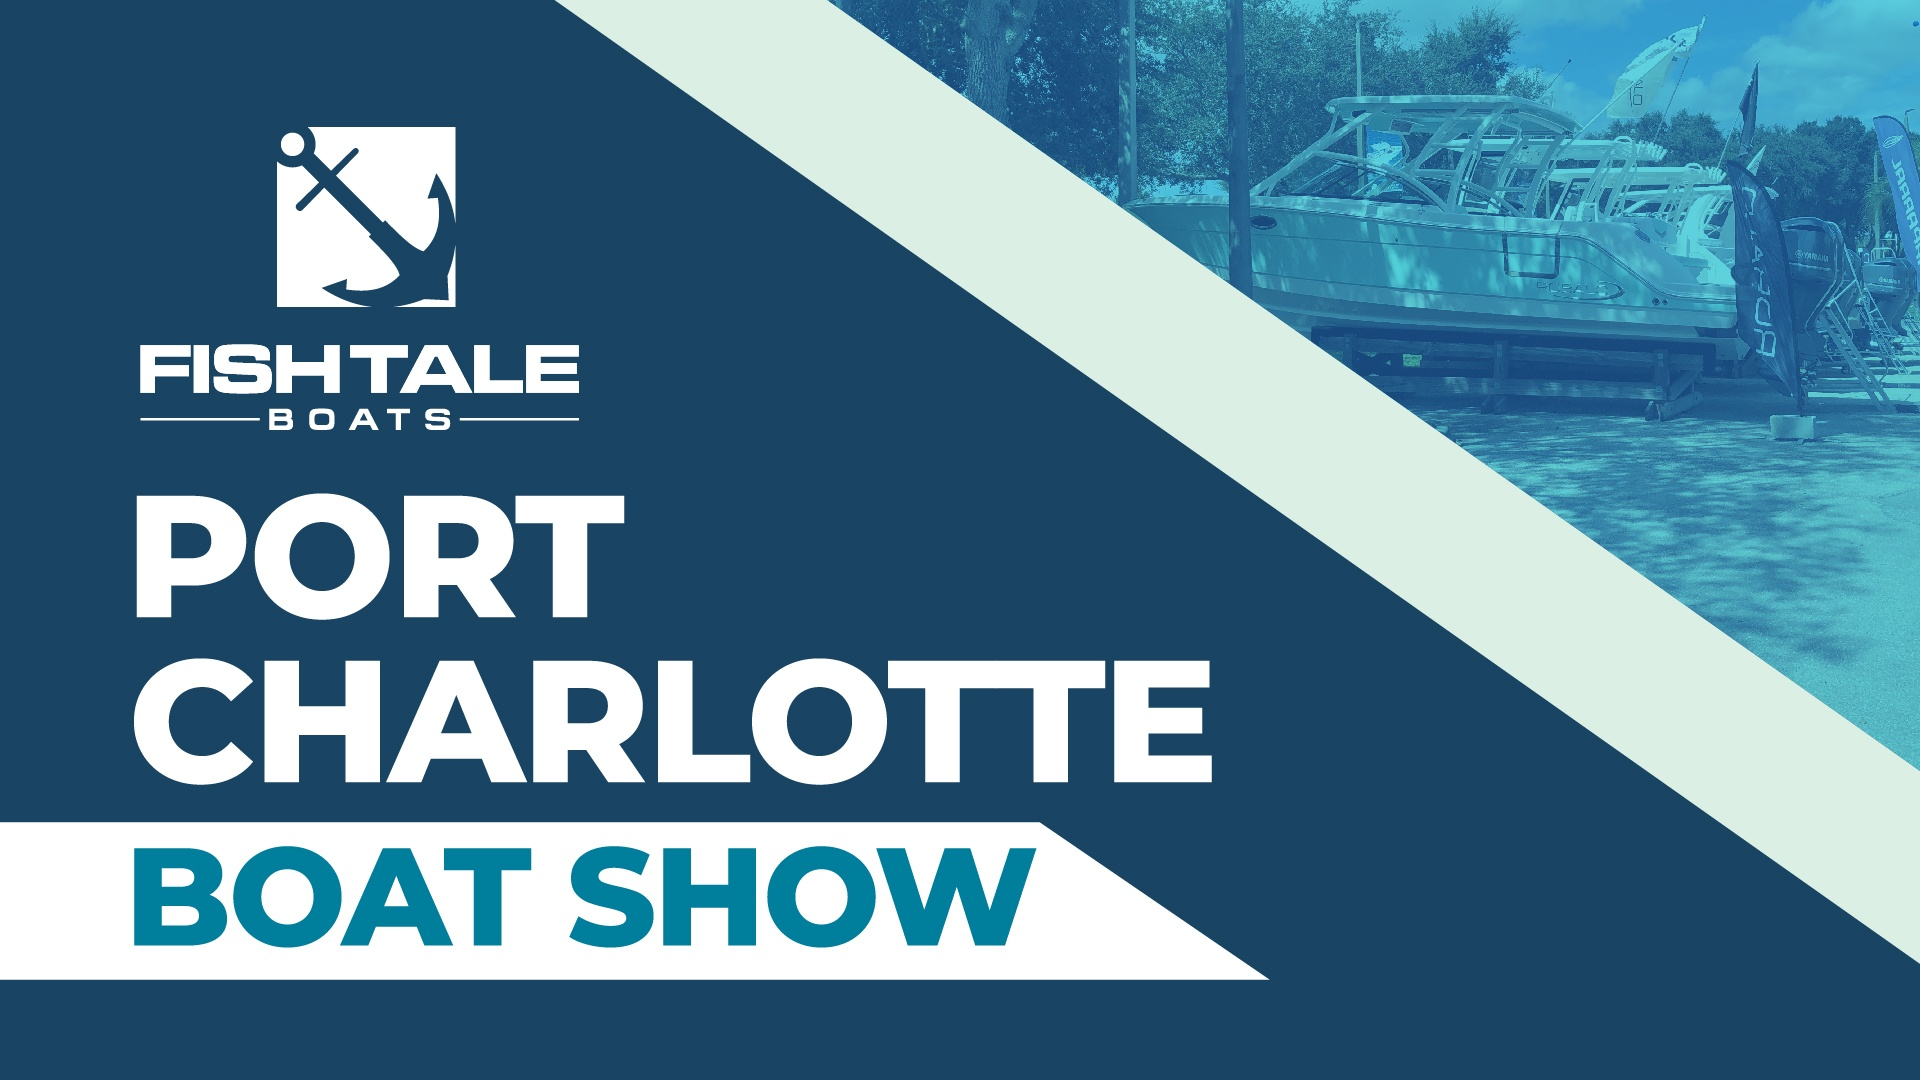 Port Charlotte Boat Show graphic with pitures of boats in the background